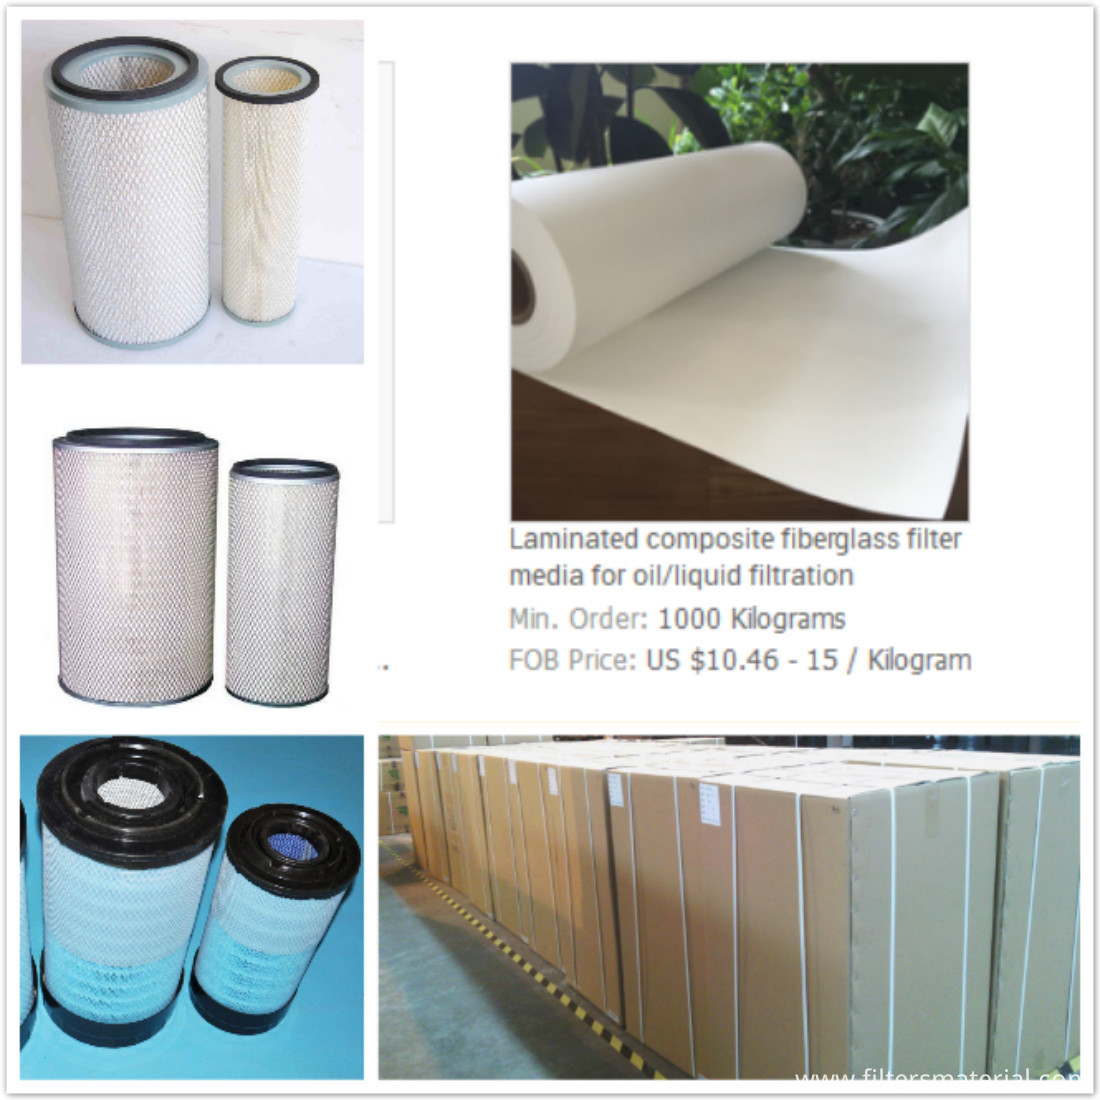 Composite fiberglass filter media for oiland liquid filtration